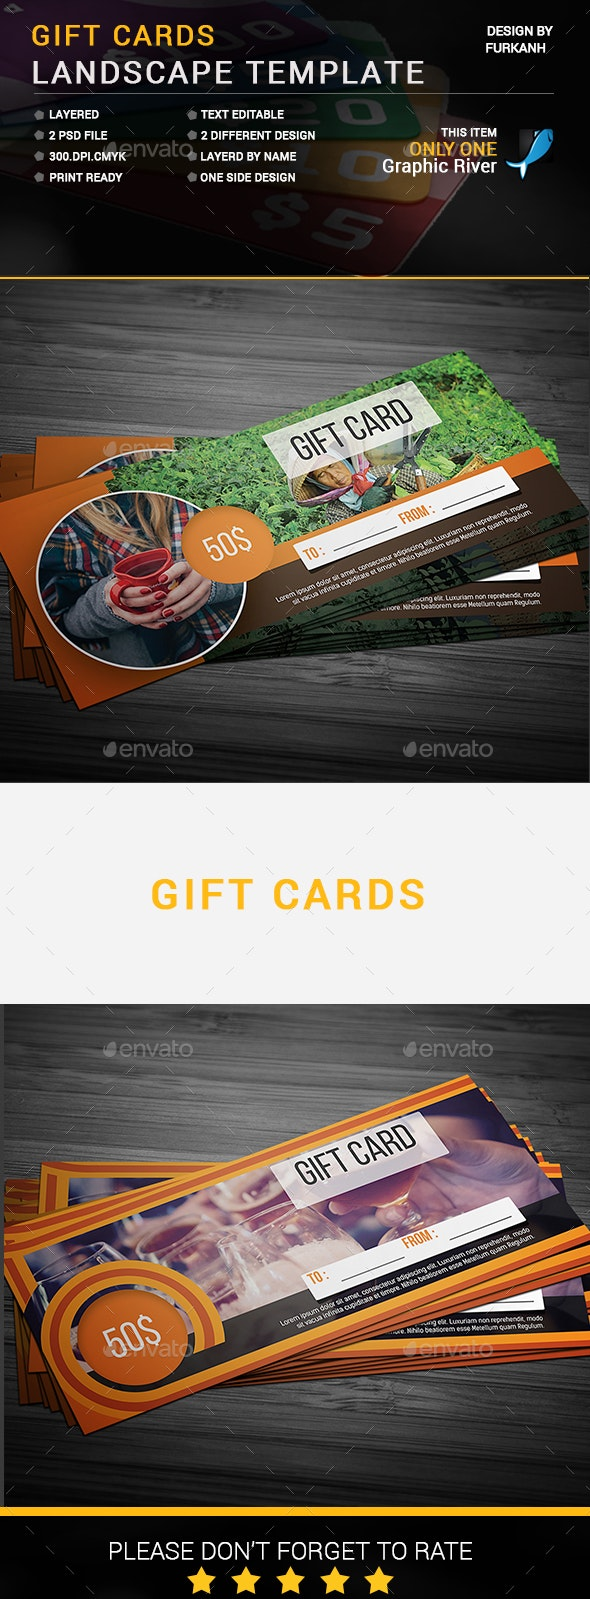 Gift Cards Landscape Template - Cards & Invites Print Templates